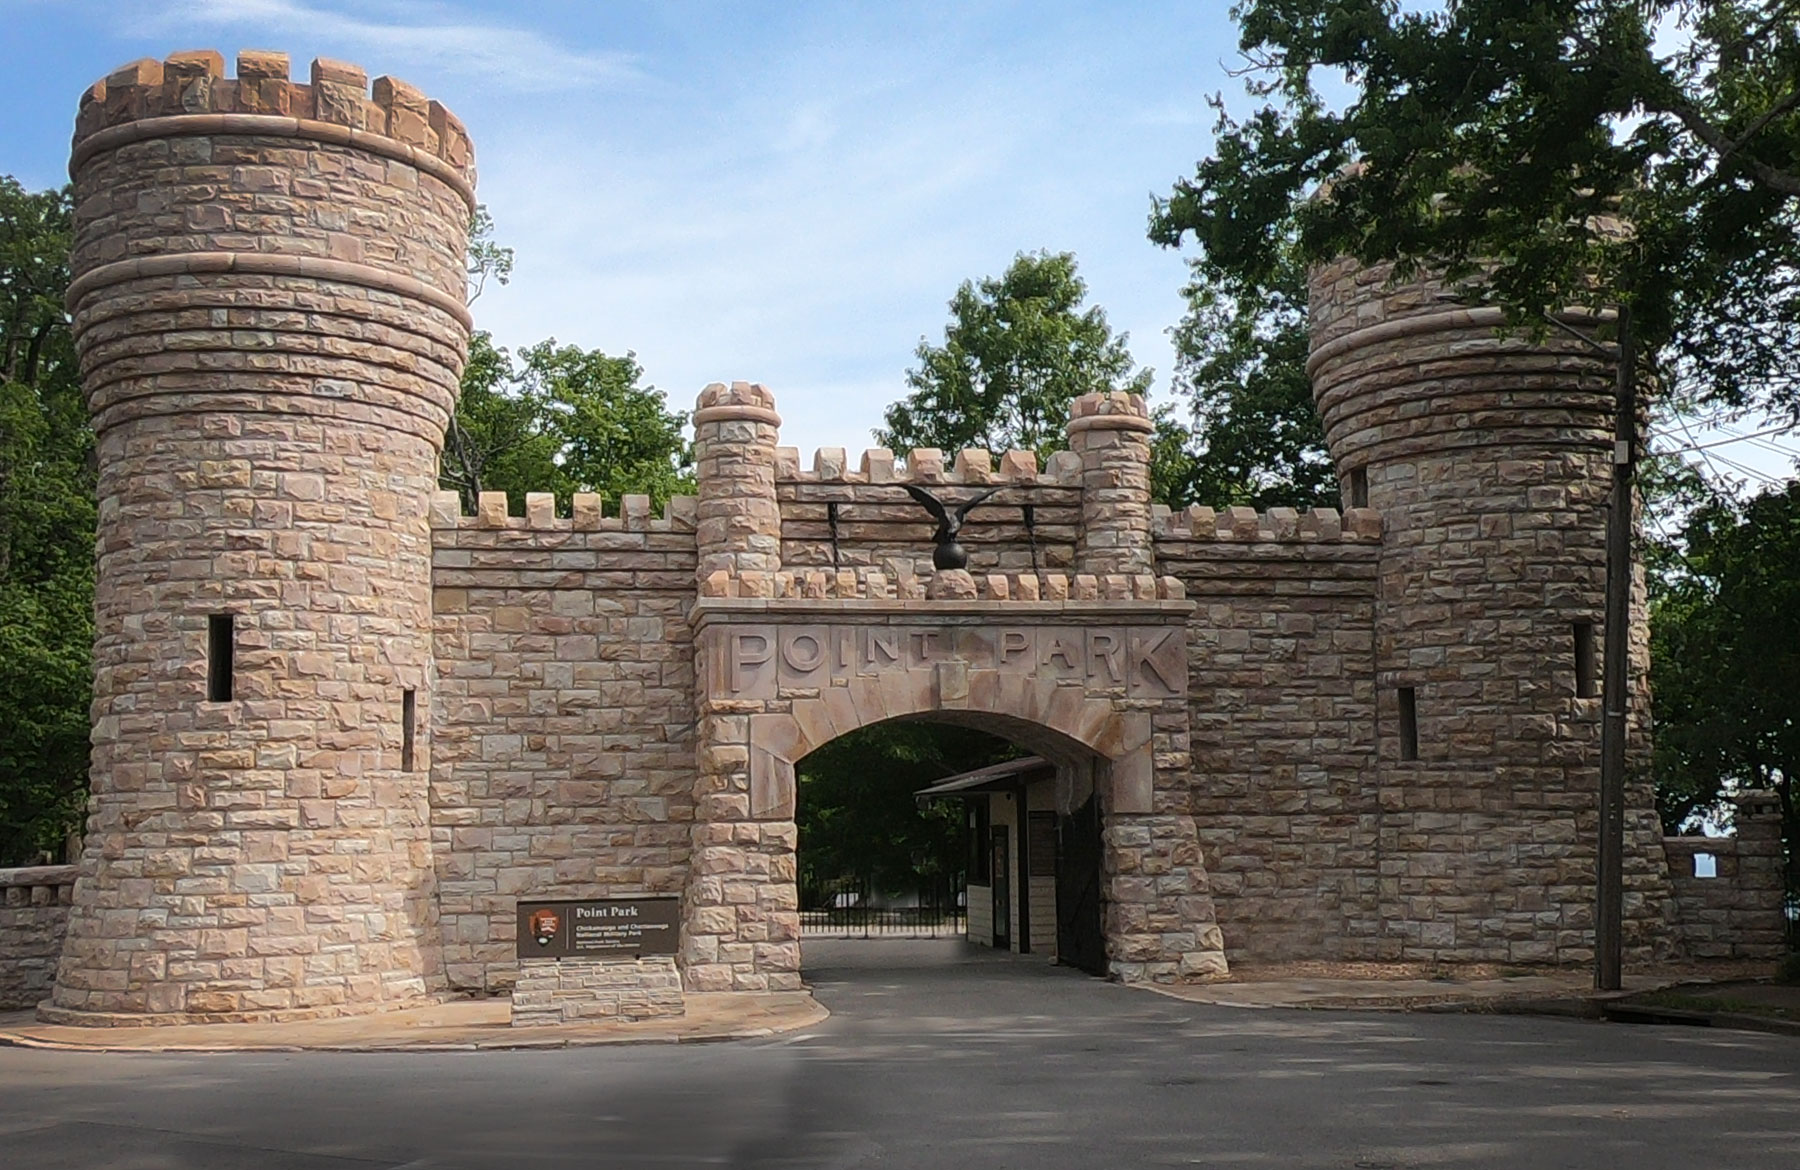 Turreted castle gates of Point Park Gate in Chattanooga, Tennessee